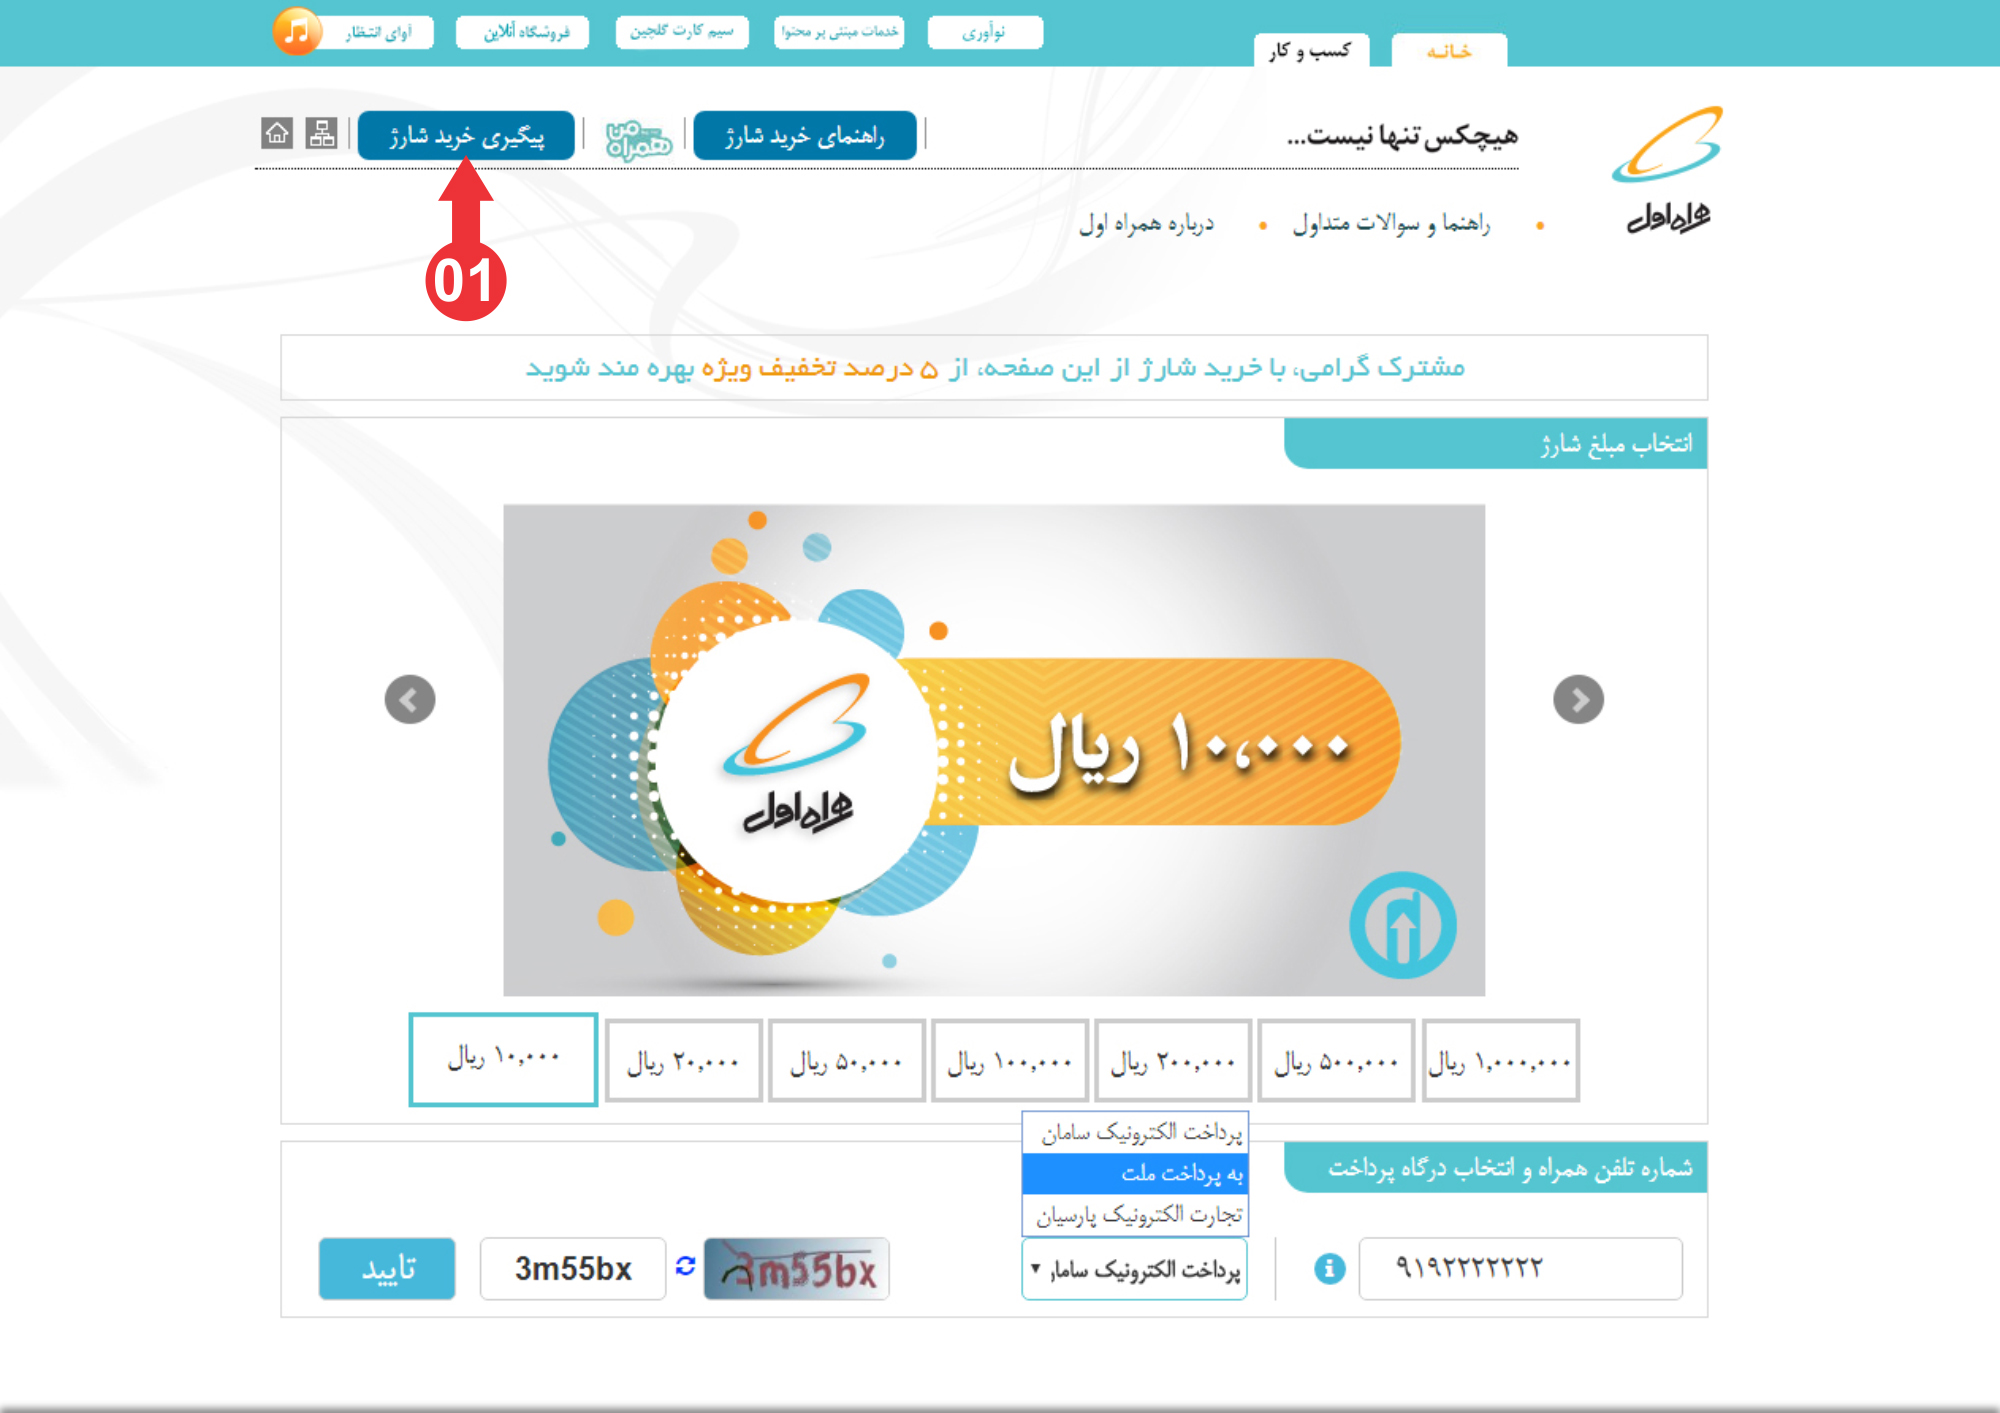 First step for purchase inquiry Internet Access in Iran